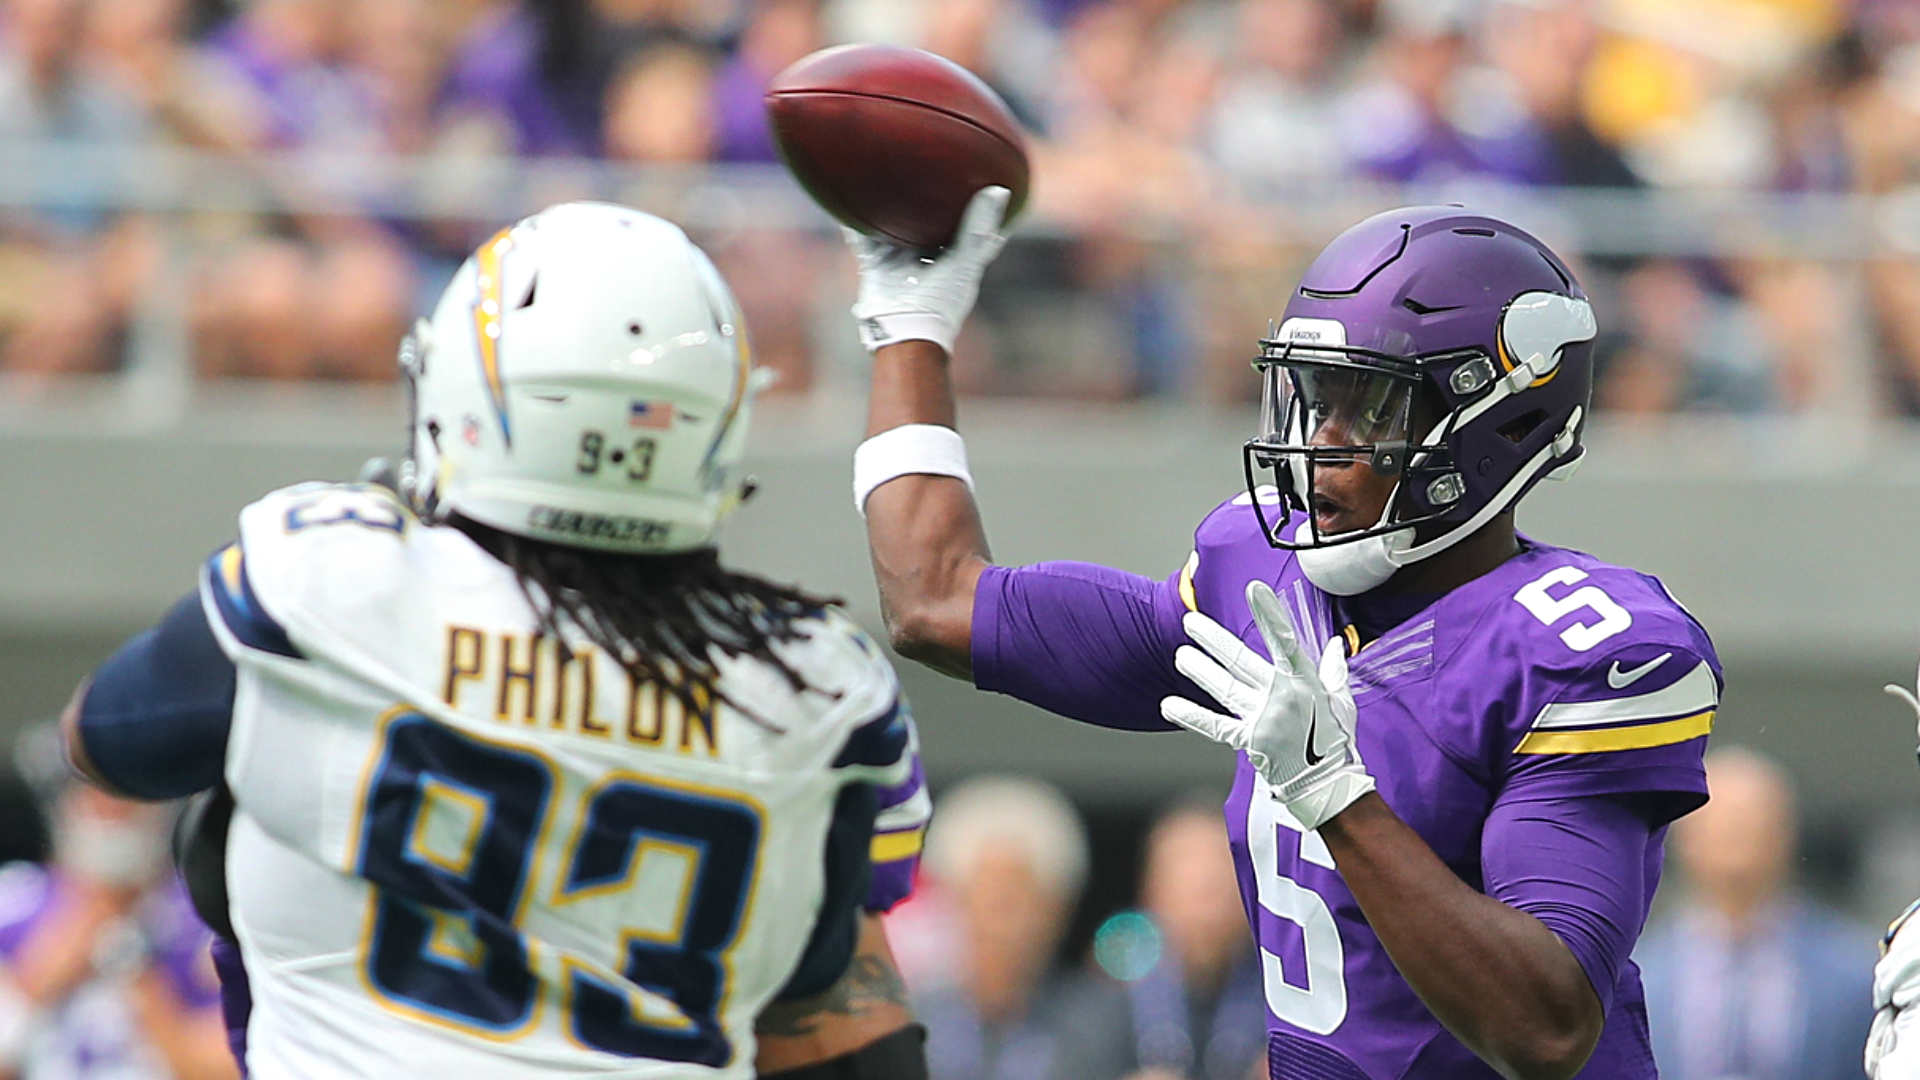 Teddy-bridgewater-082816-usnews-getty-ftr_12kkhc247a2pxzs0ia8r9a0pm